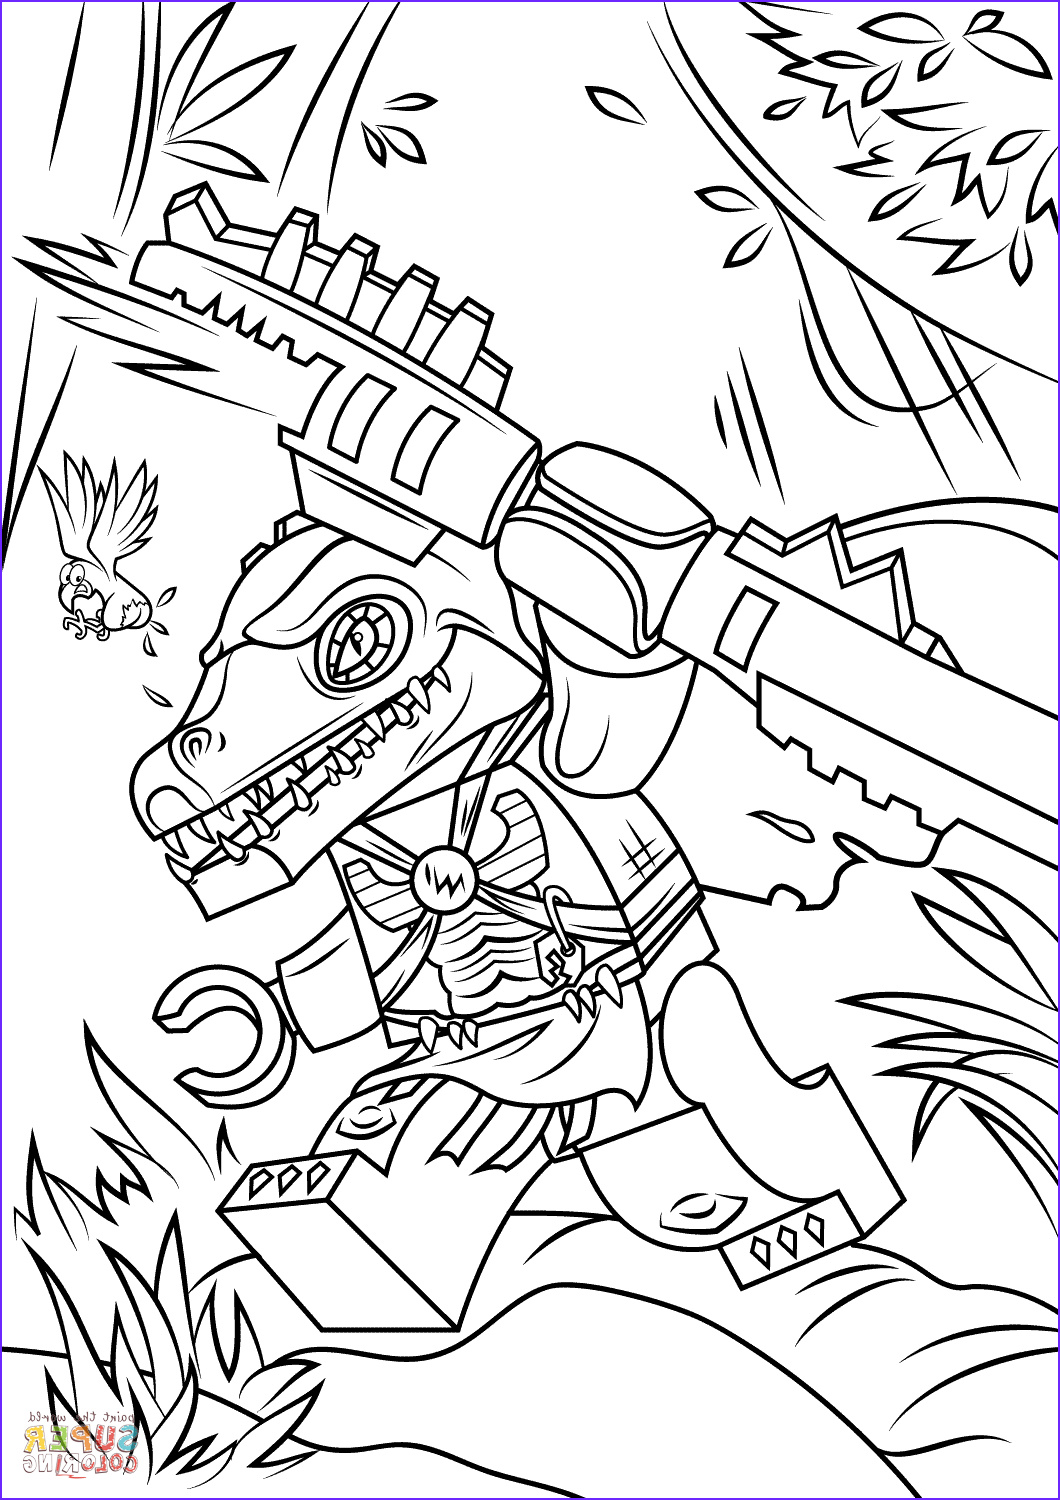 Lego Chima Coloring Page New Gallery Lego Chima Cragger Coloring Page